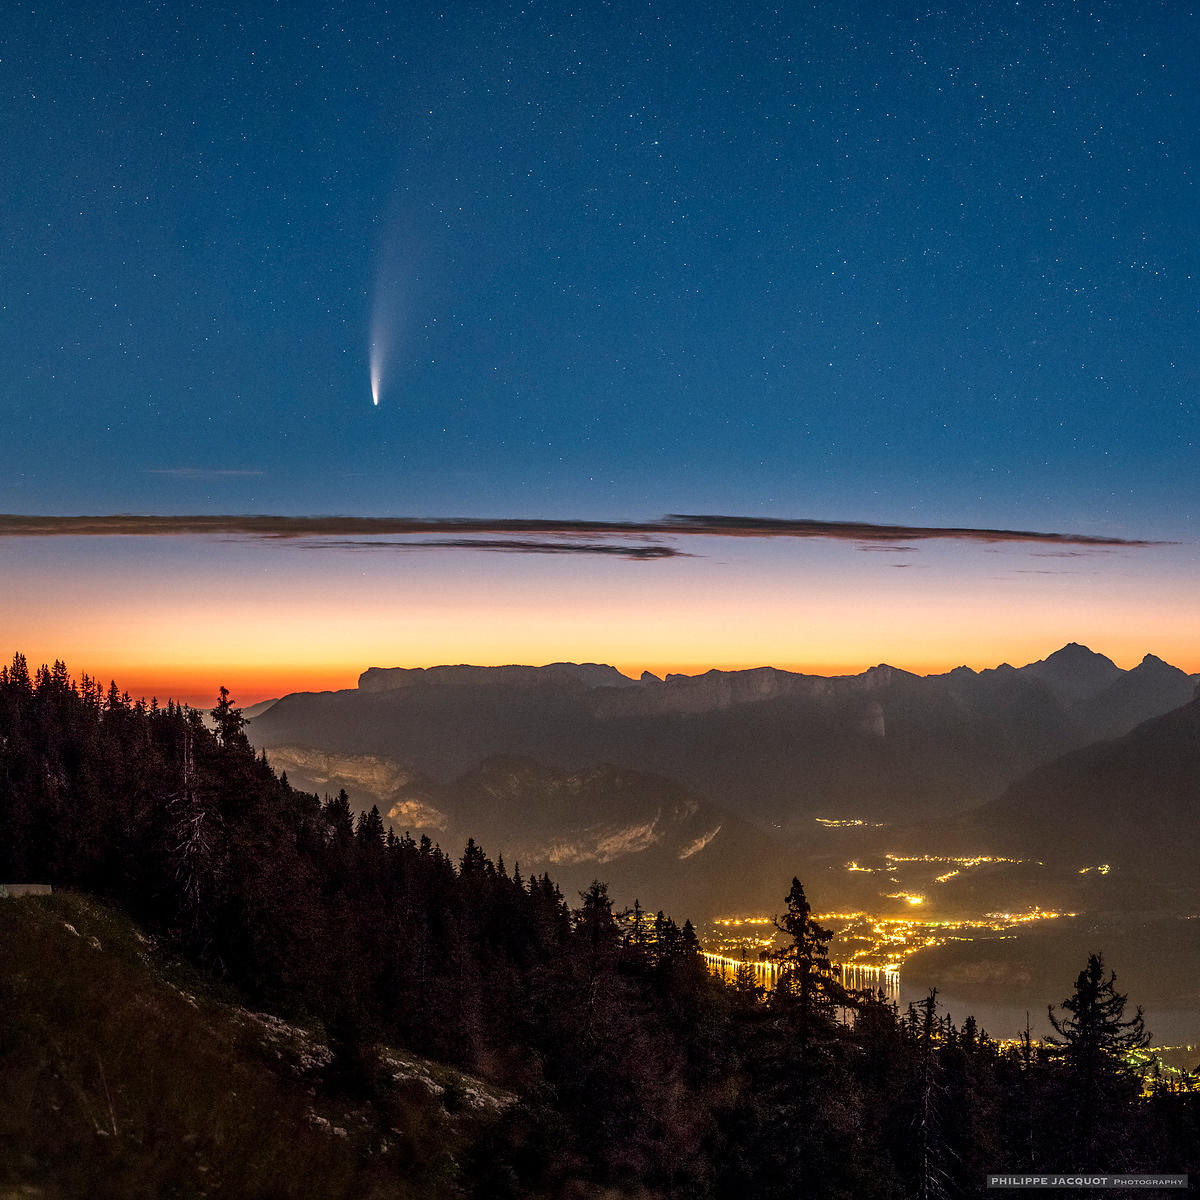 July 12, 2020 - Cometary dawn (detail) - Annecy Semnoz